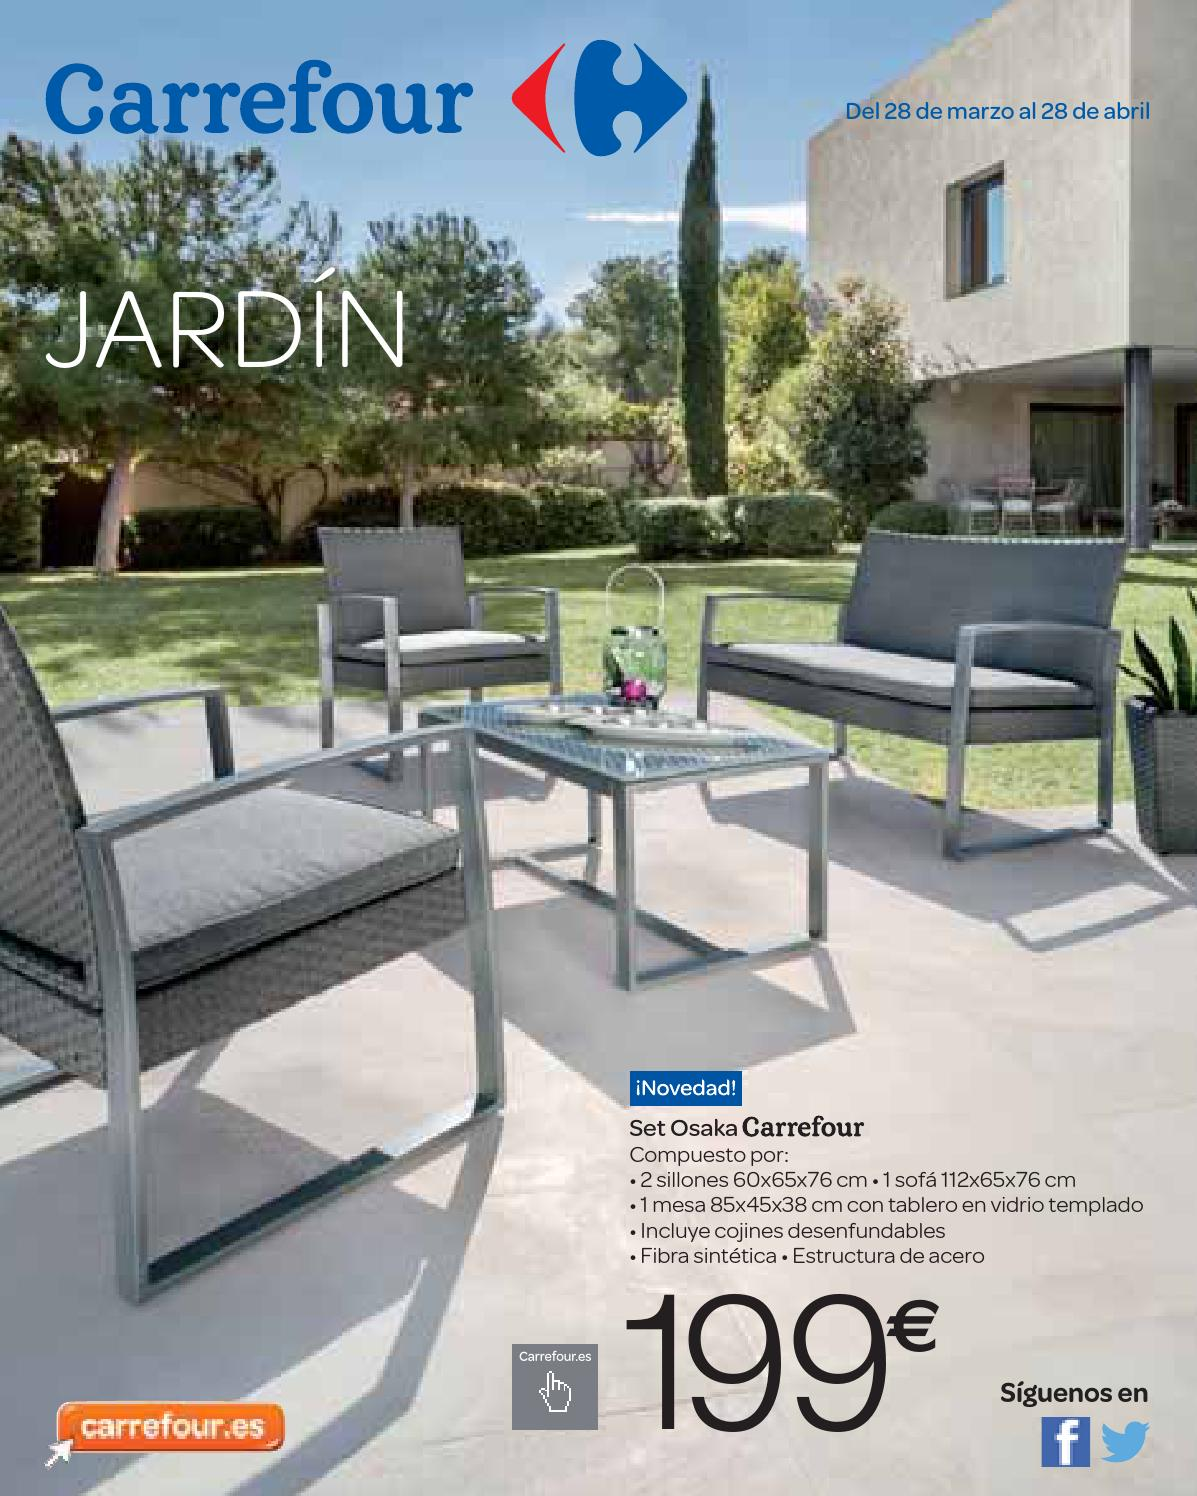 Carrefour jard n by andr gon alves issuu for Muebles jardin alcampo online